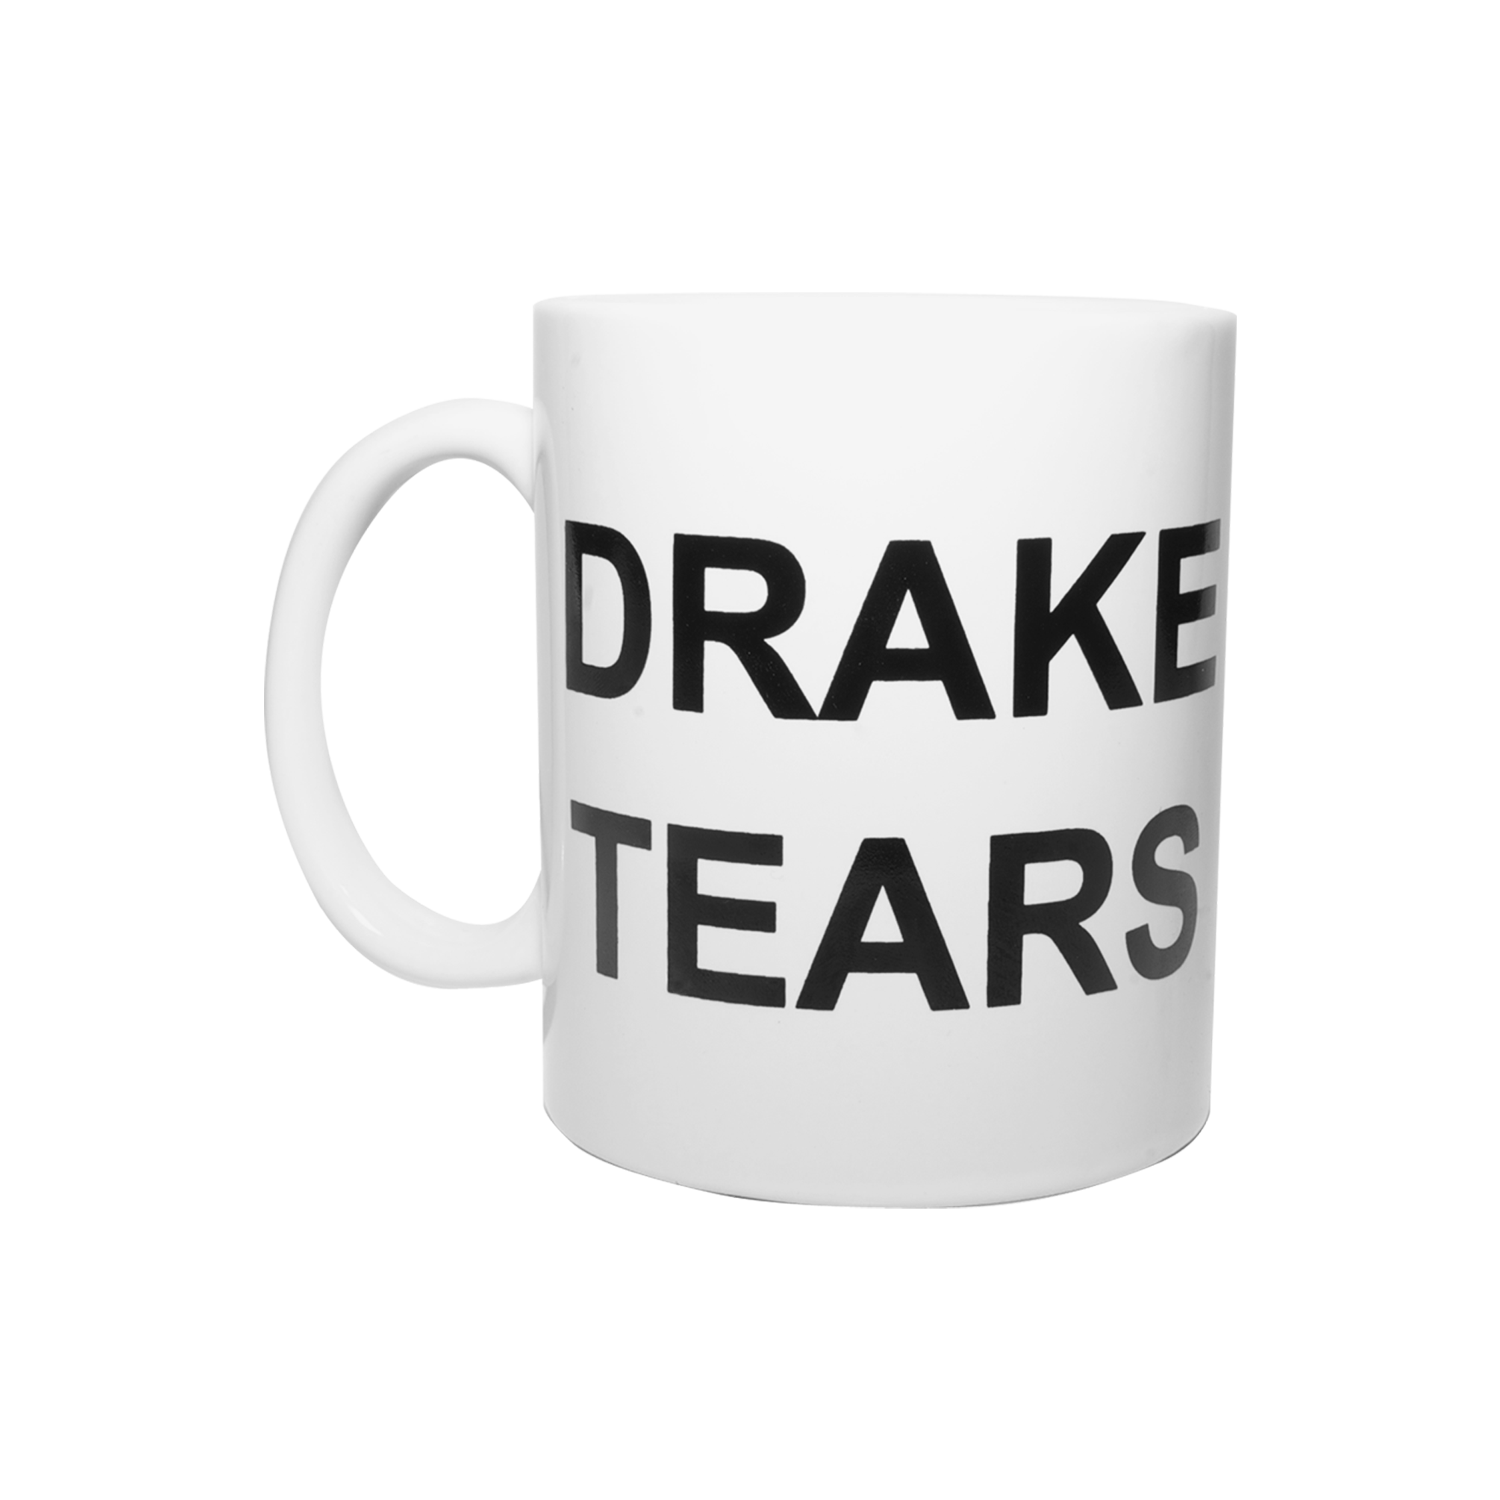 1_DrakeTears_Front.png